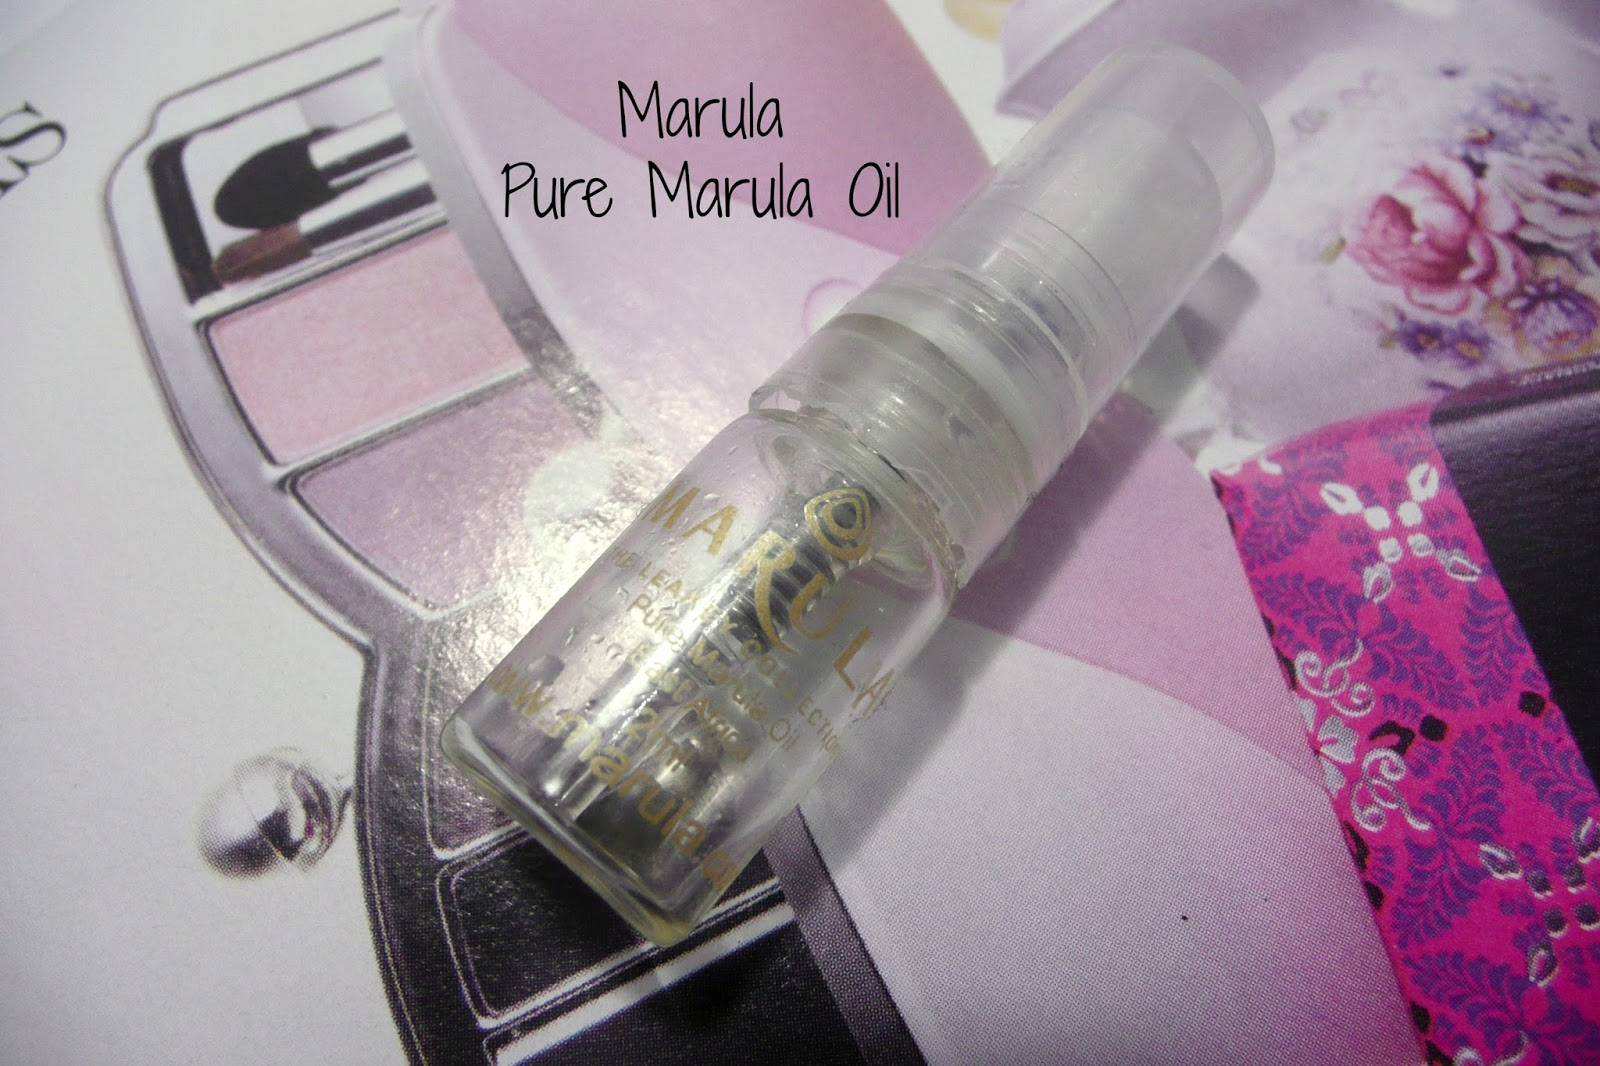 Marula Pure Marula Oil Review